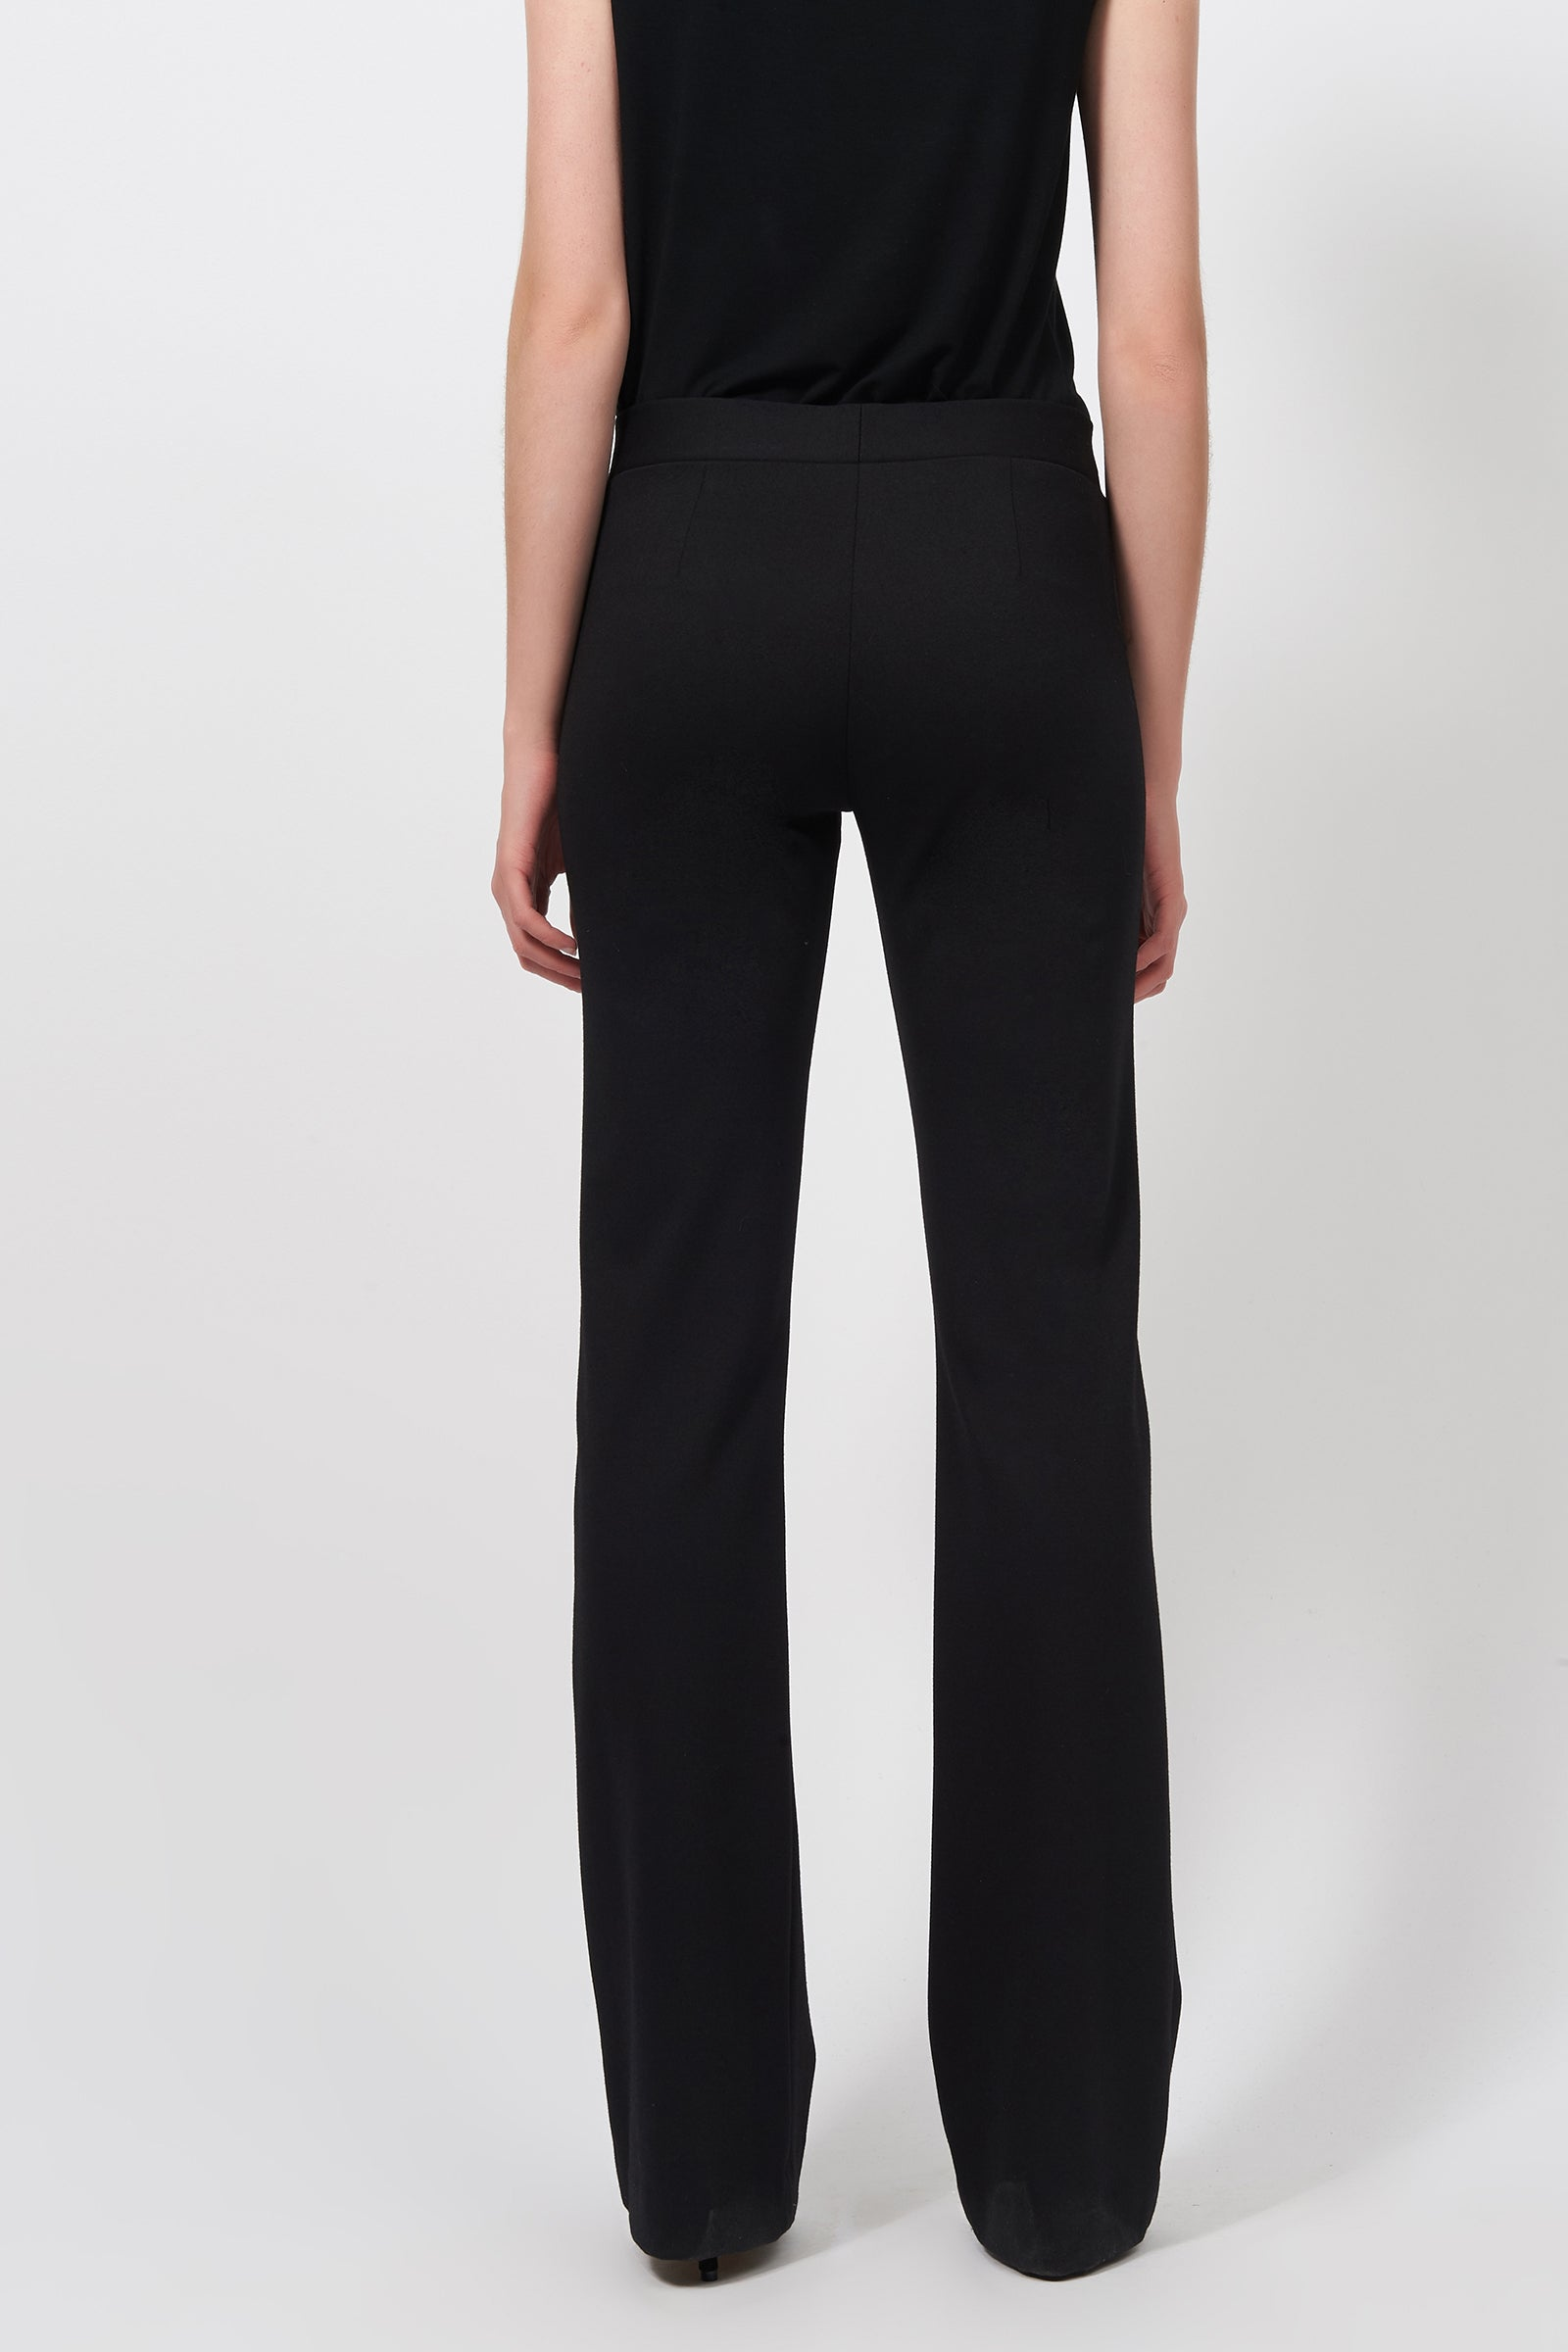 Kal Rieman Pintuck Ponte Column Pant in Black on Model Full Front View